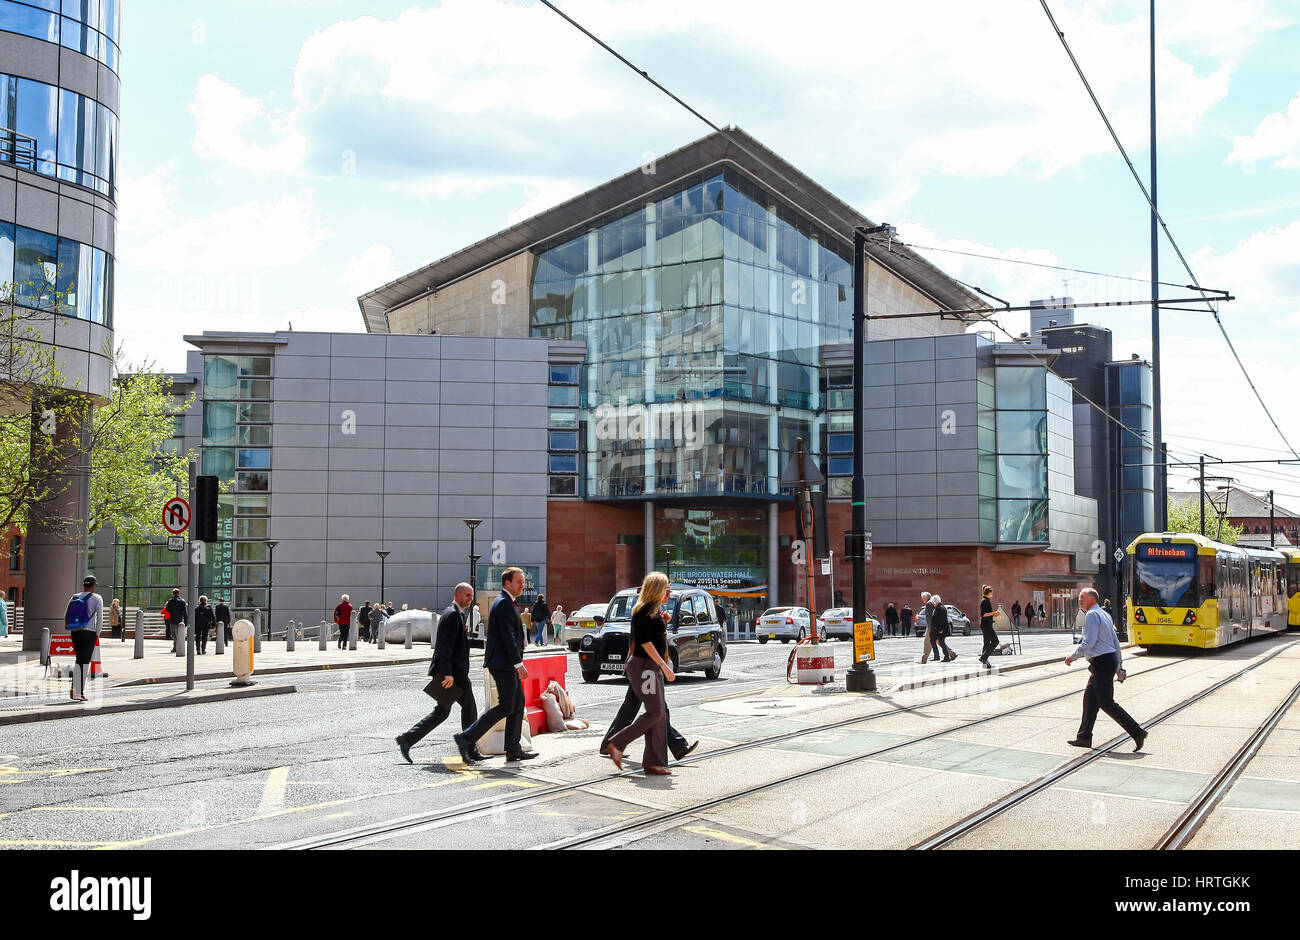 Bridgewater Hall, Barbirolli Square, Manchester City centre, England UK - Stock Image